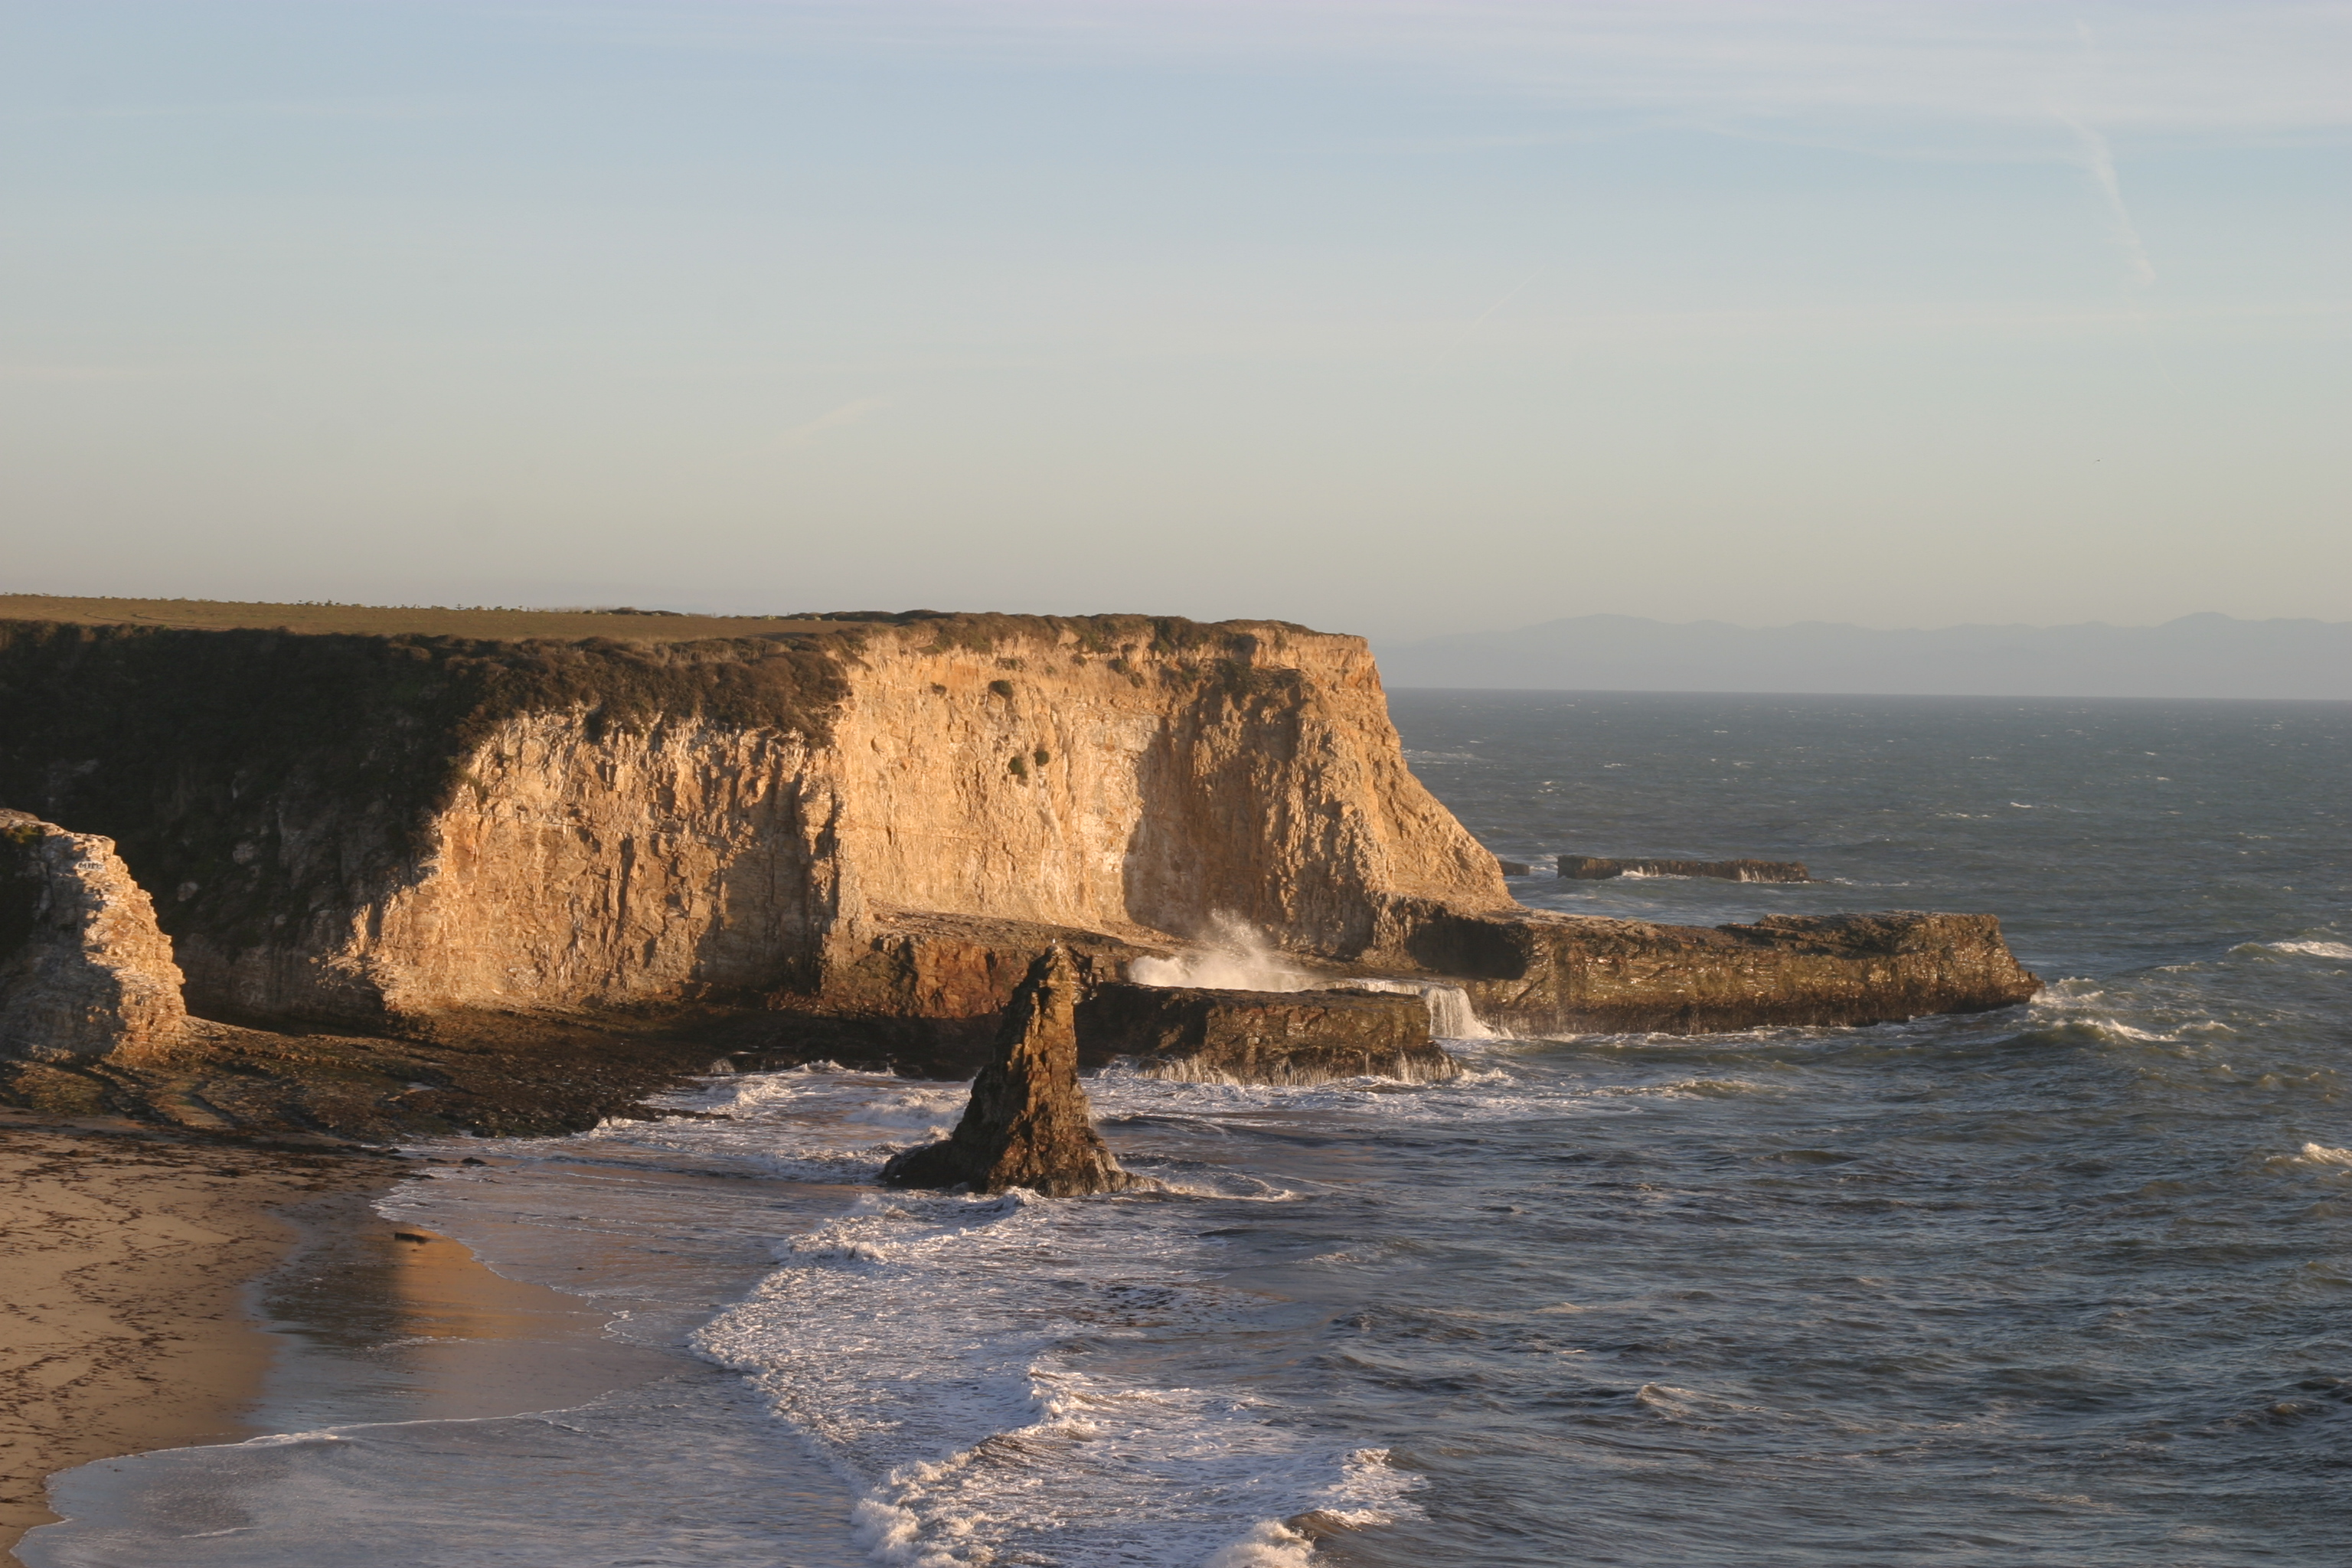 File:Santa Cruz Coast in 2006.JPG - Wikipedia, the free encyclopedia